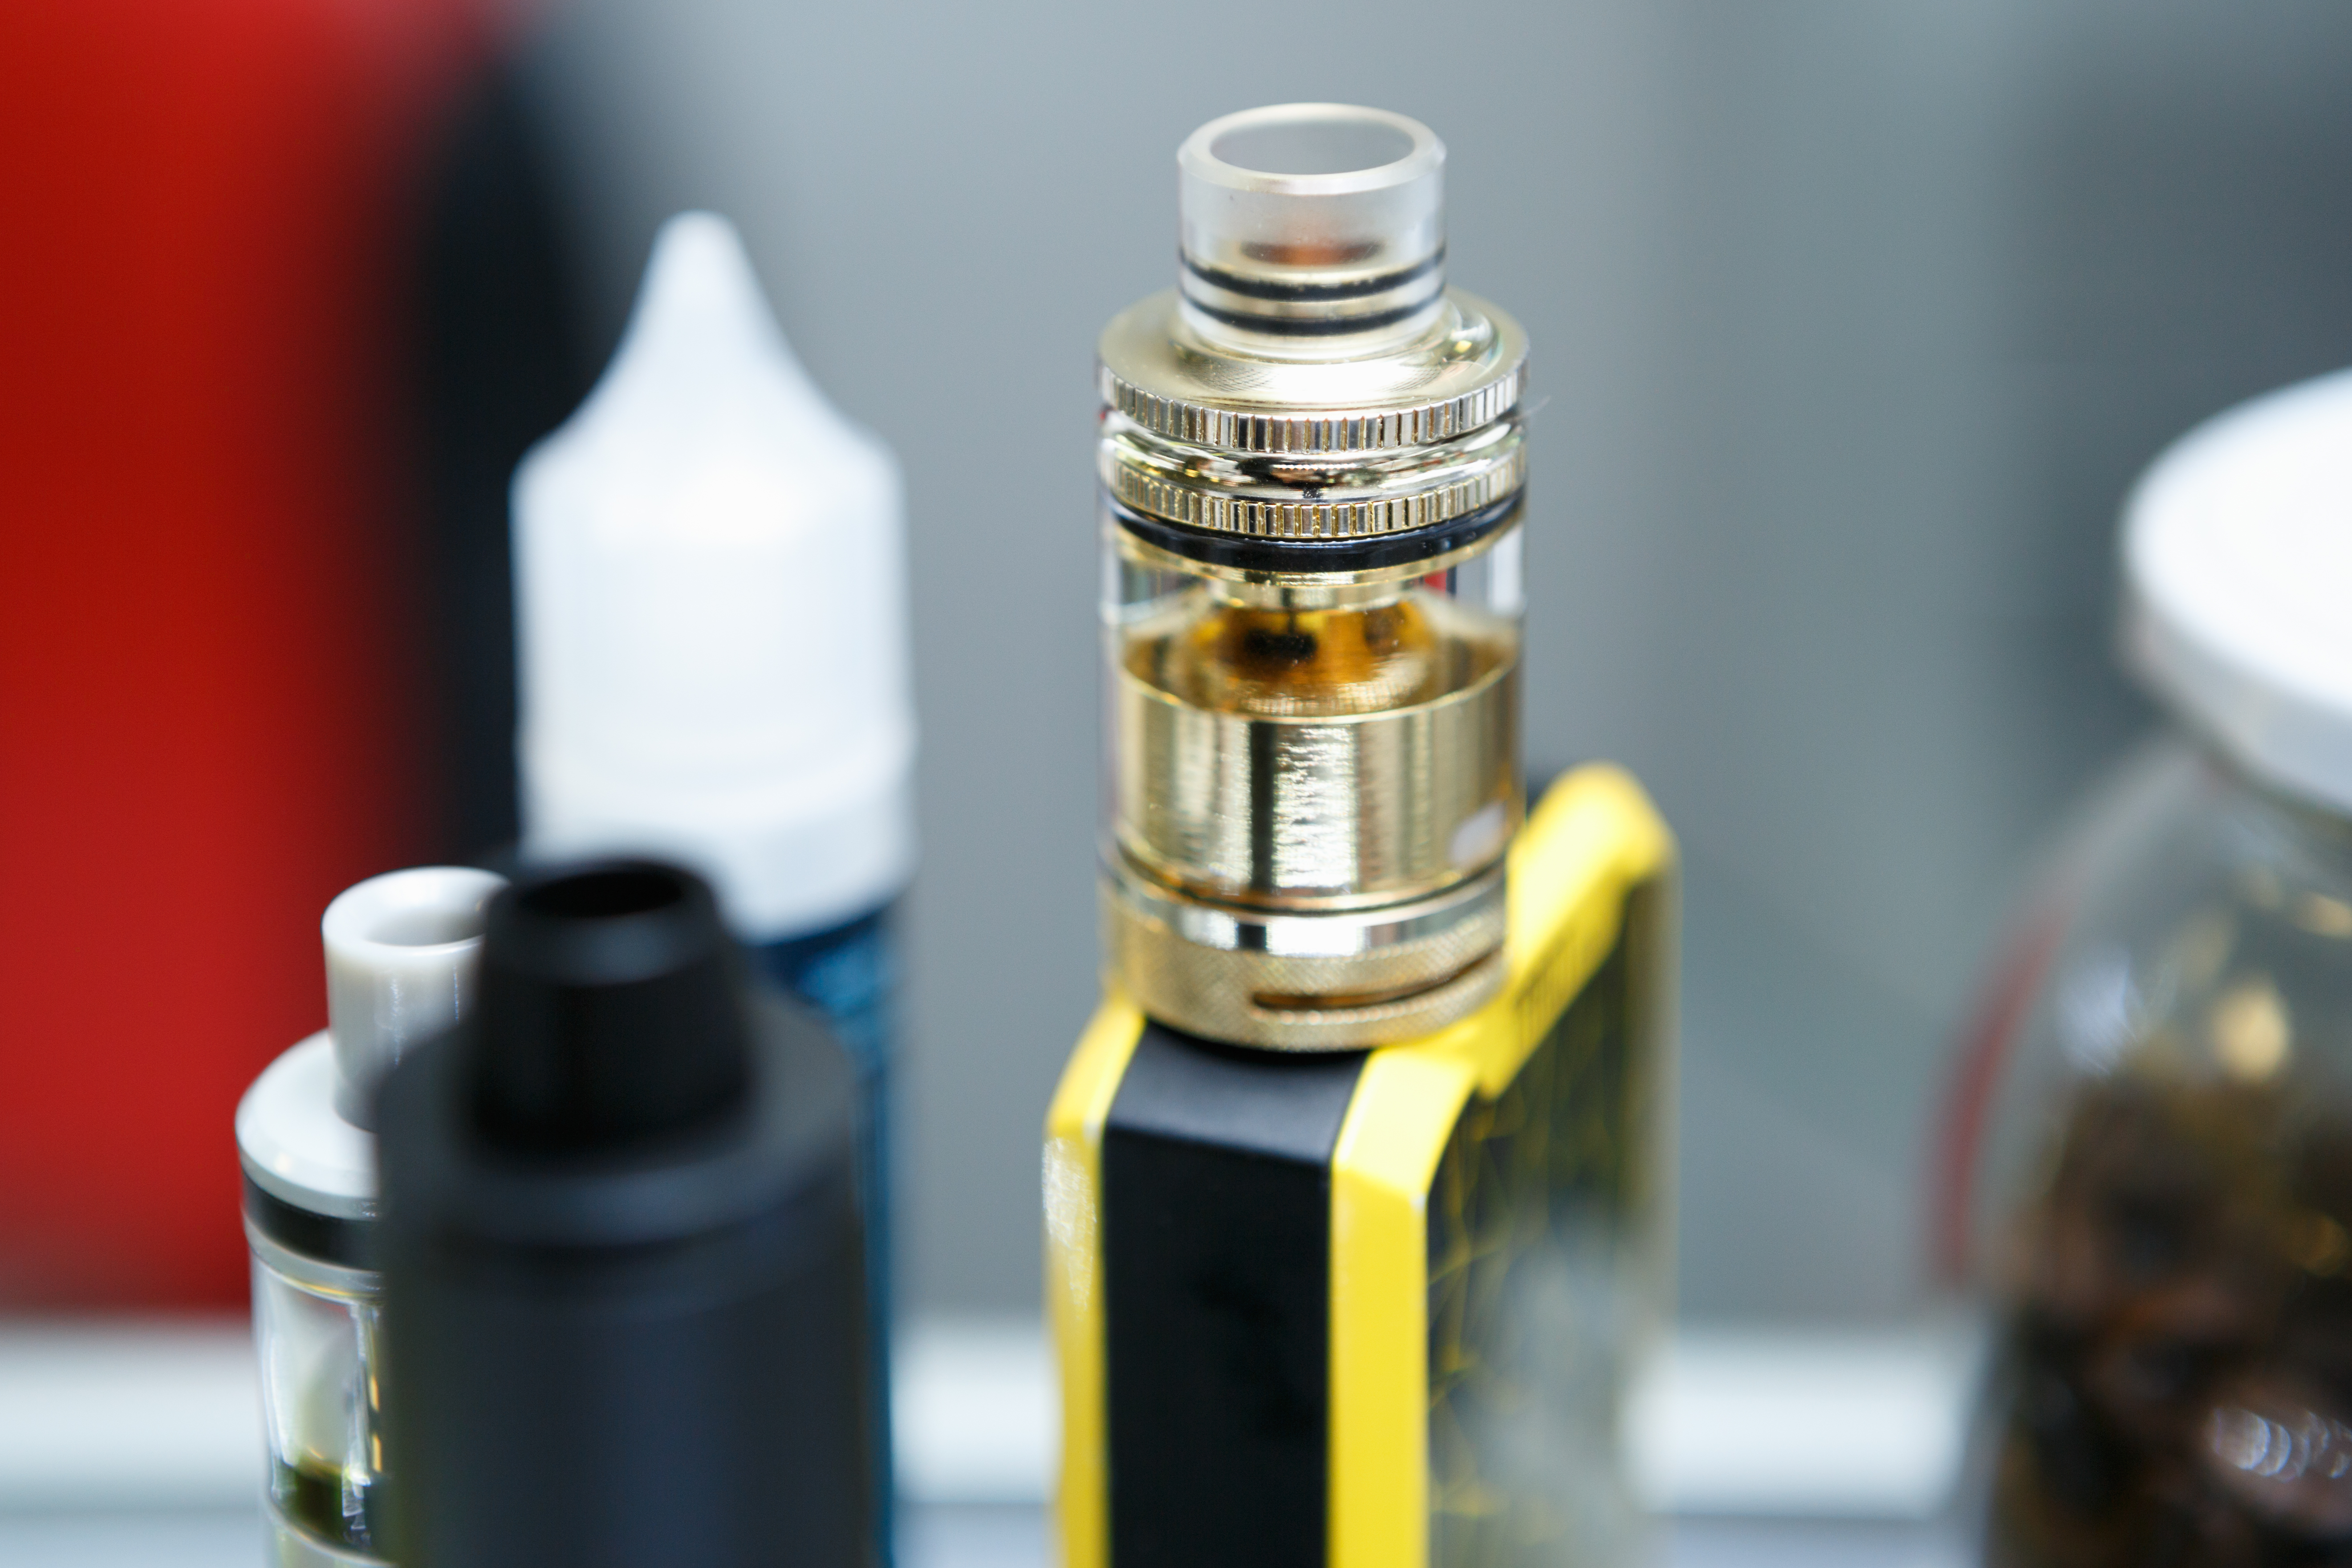 Vaping in Asia: How to stay on the right side of the law